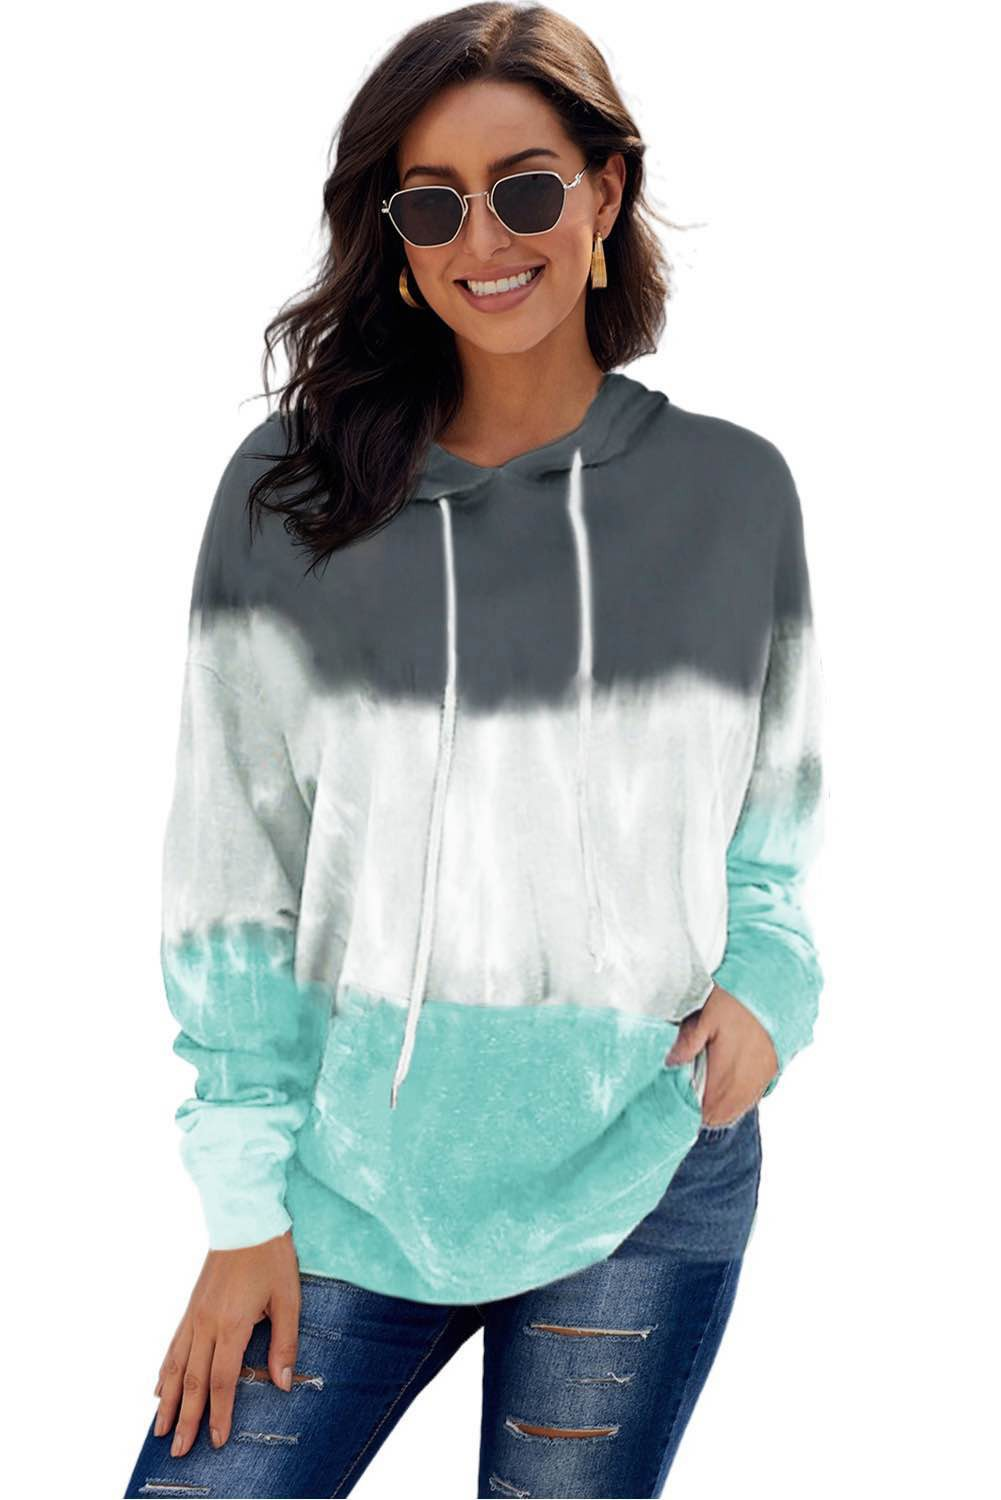 TEAL HOODED LONG SLEEVE